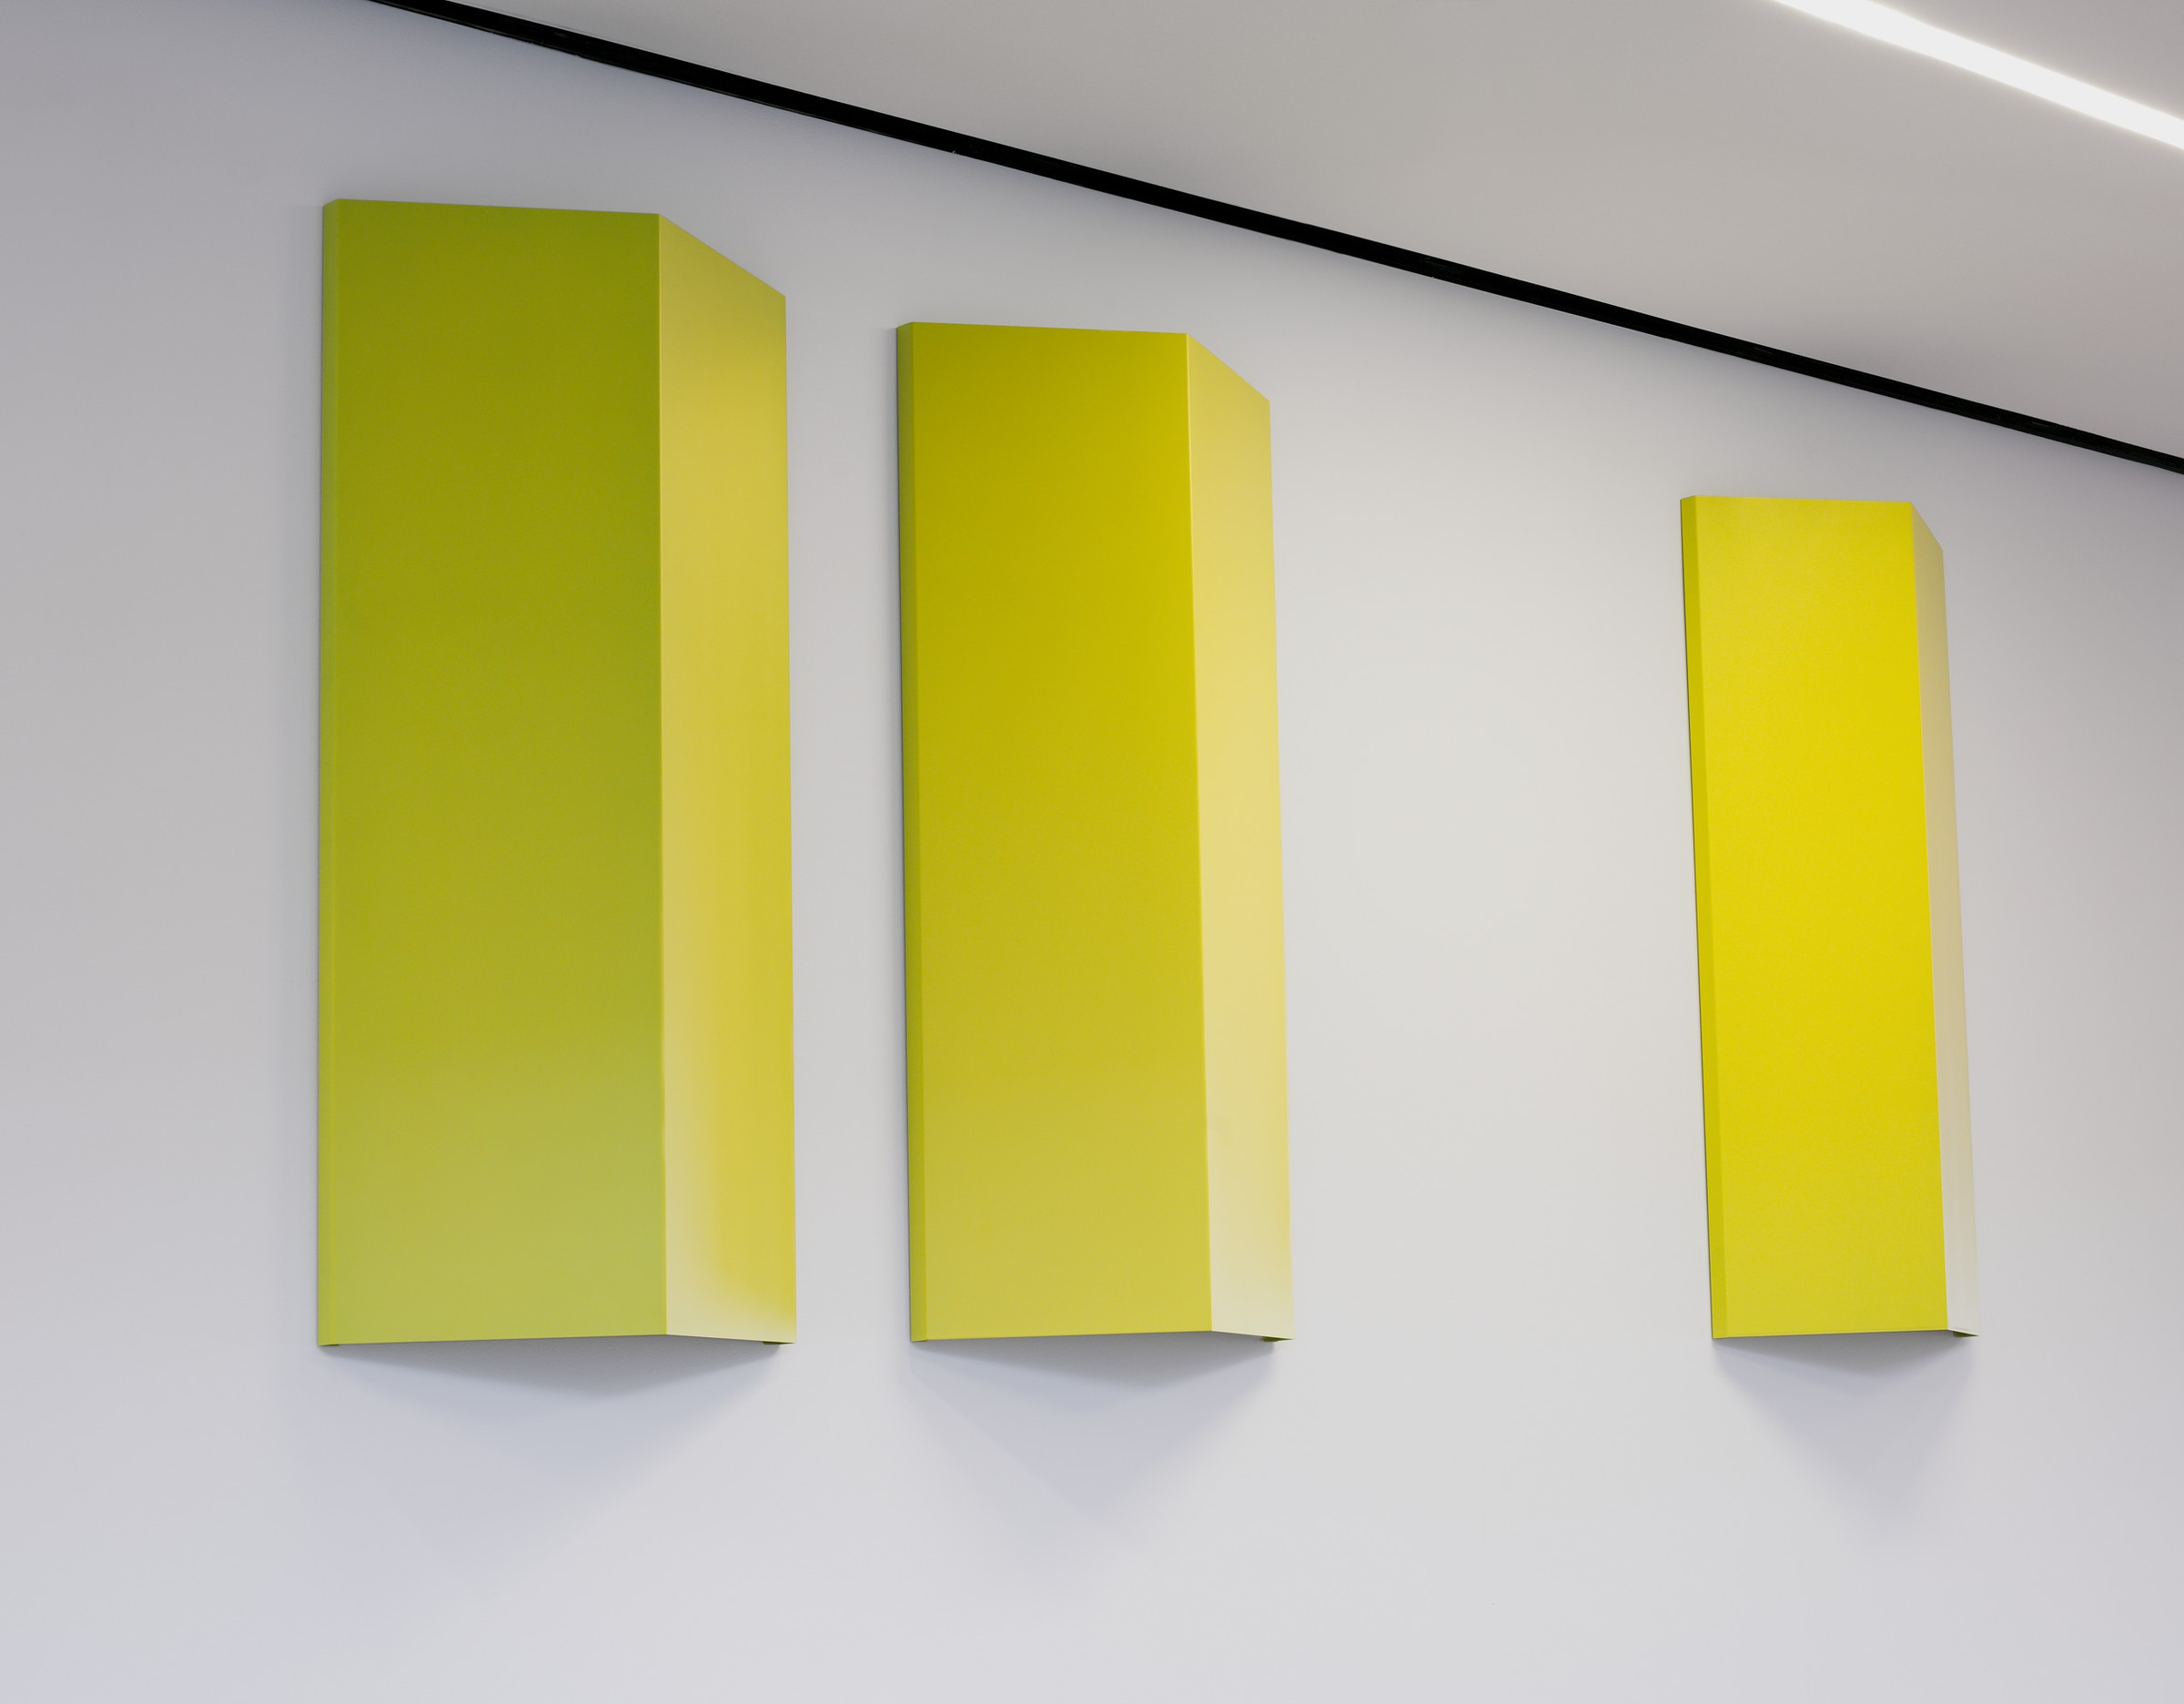 Three identical, yellow-painted aluminum sheets, each folded convexly, are mounted in a vertical orientation and parallel to each other on a white wall.